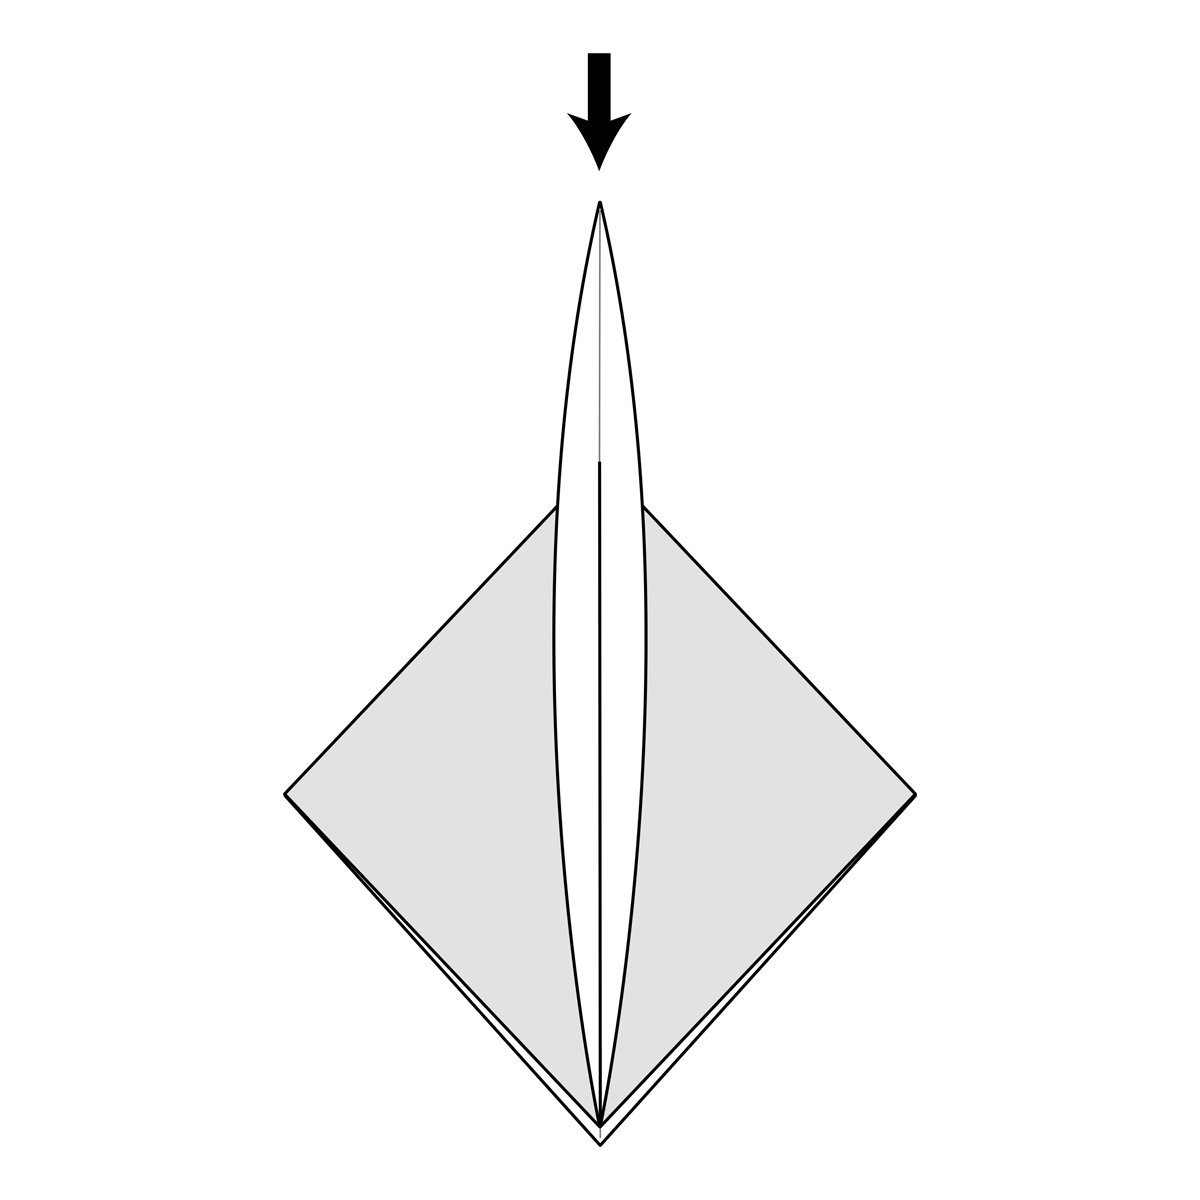 picture about Origami Crane Instructions Printable identify Origami Crane - How towards Fold a Standard Paper Crane